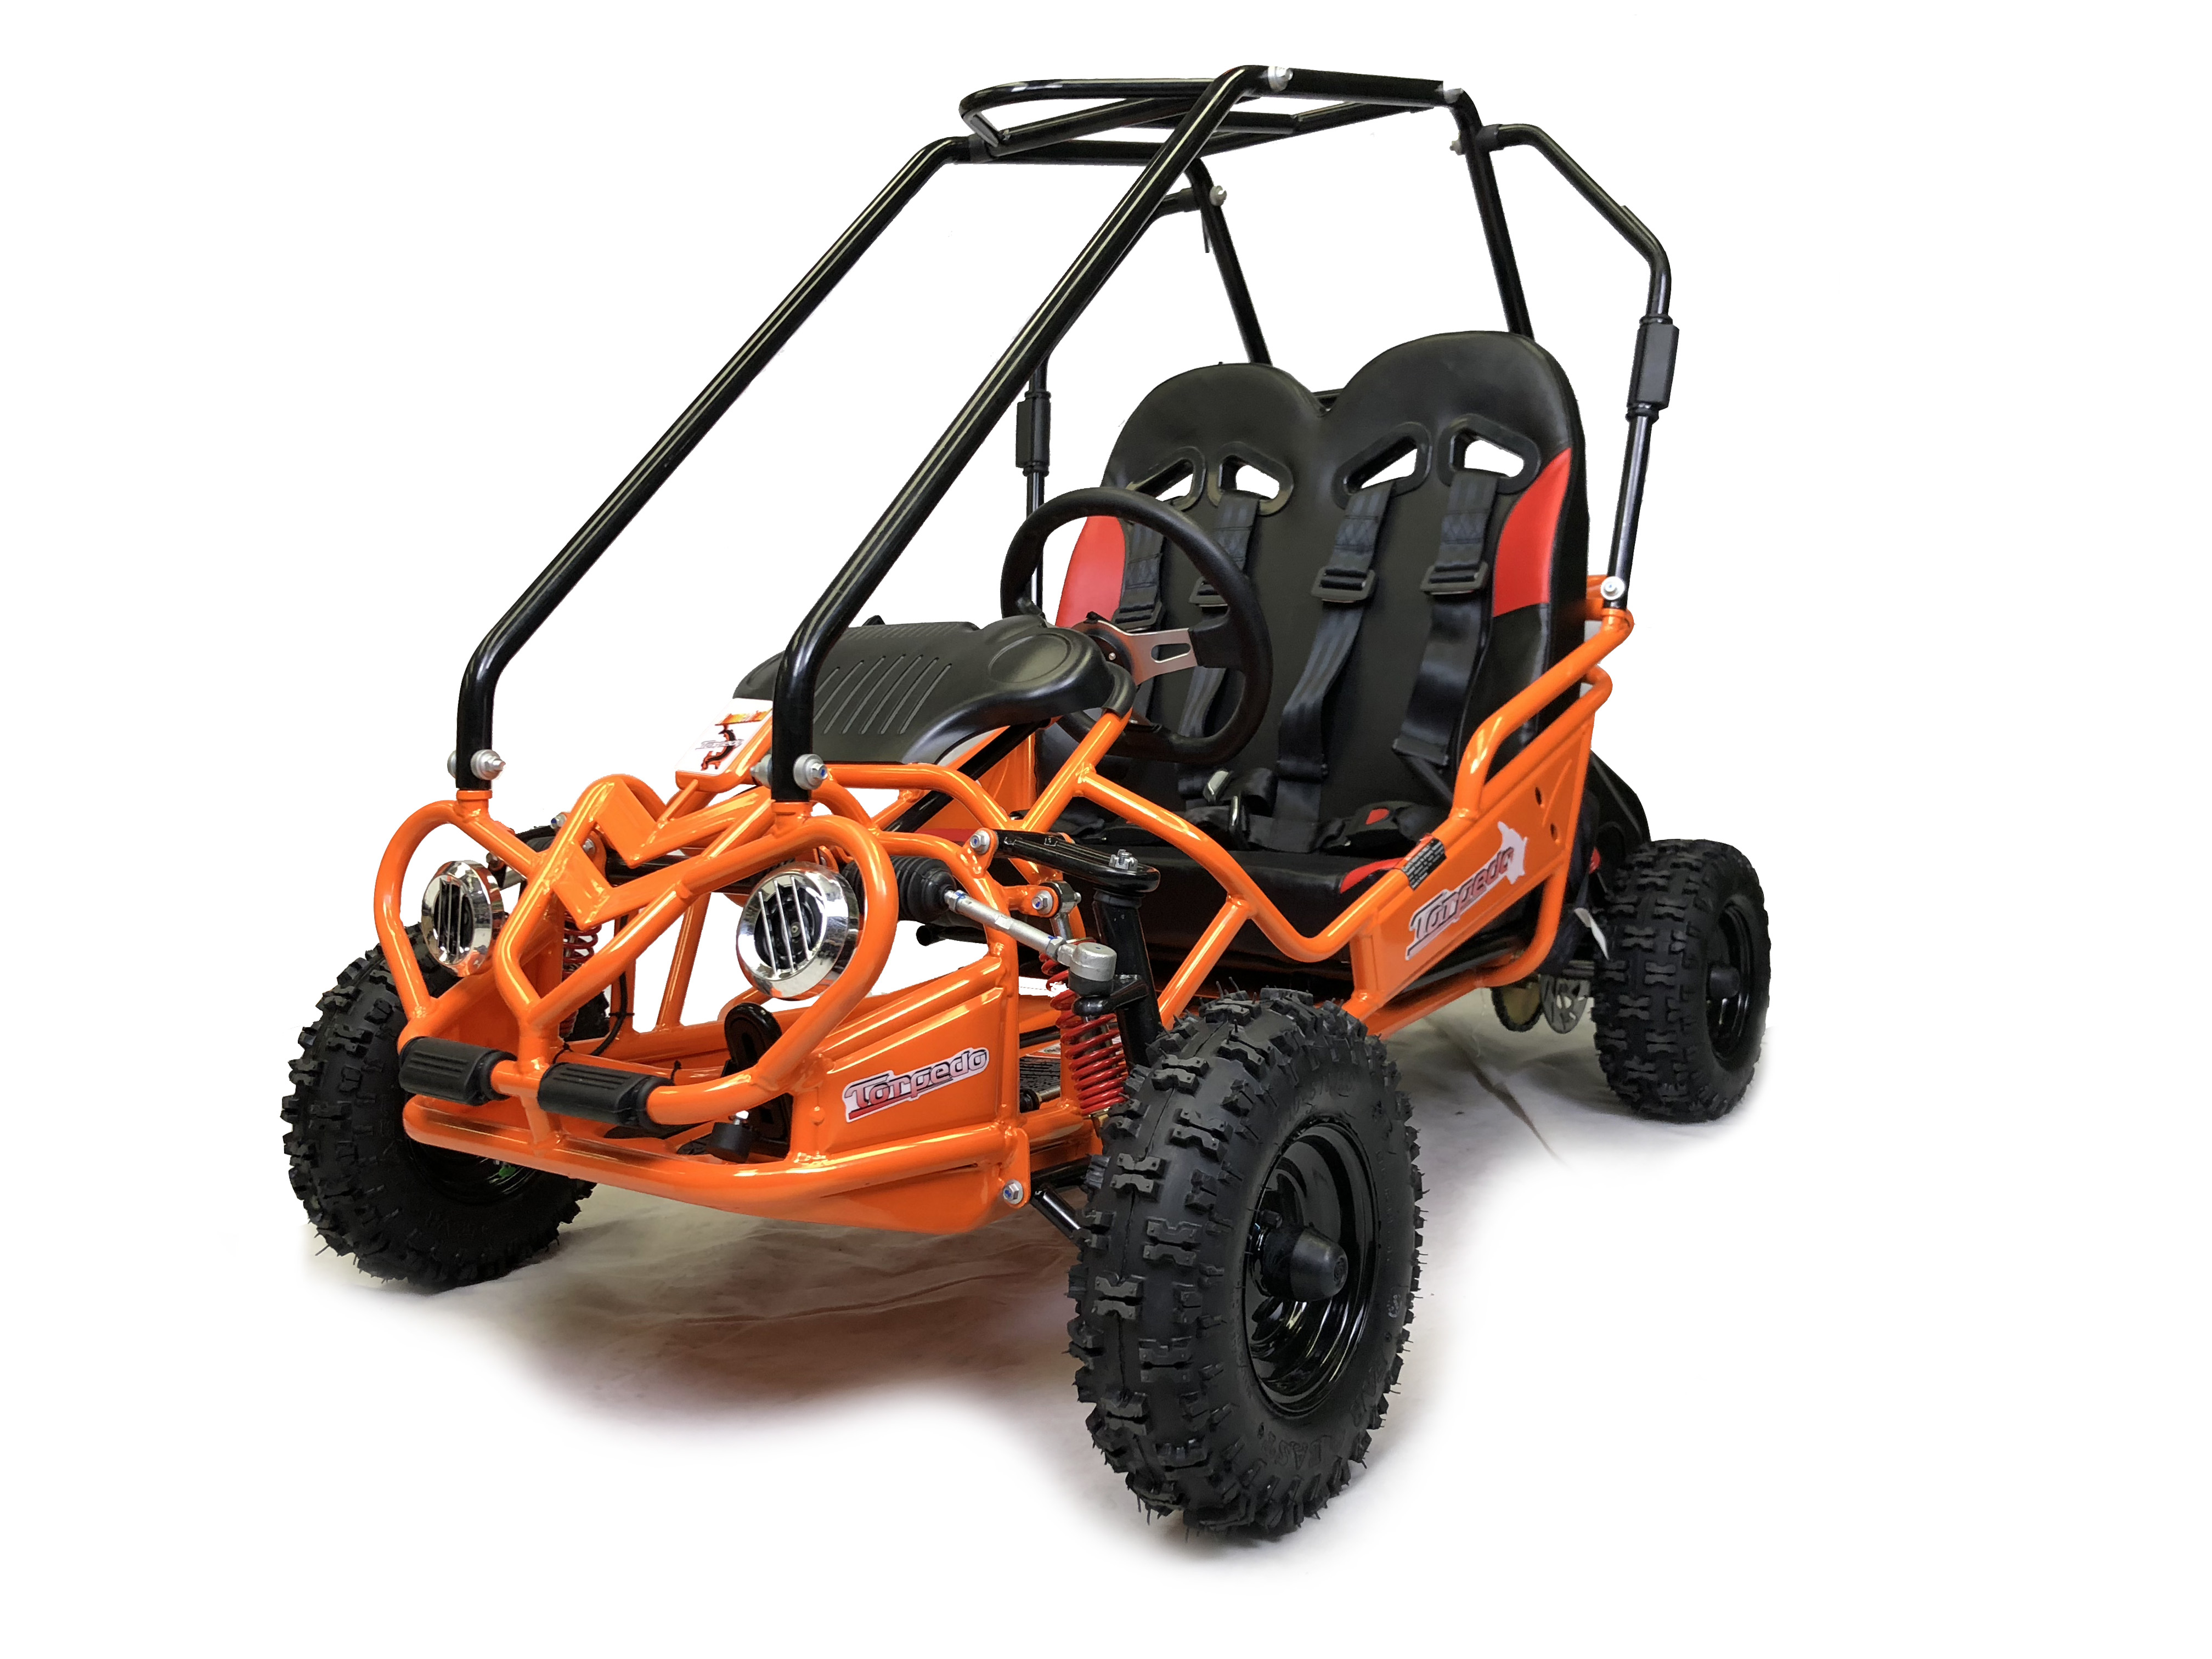 Hammerhead Buggy Spare Parts | Storm Buggies on